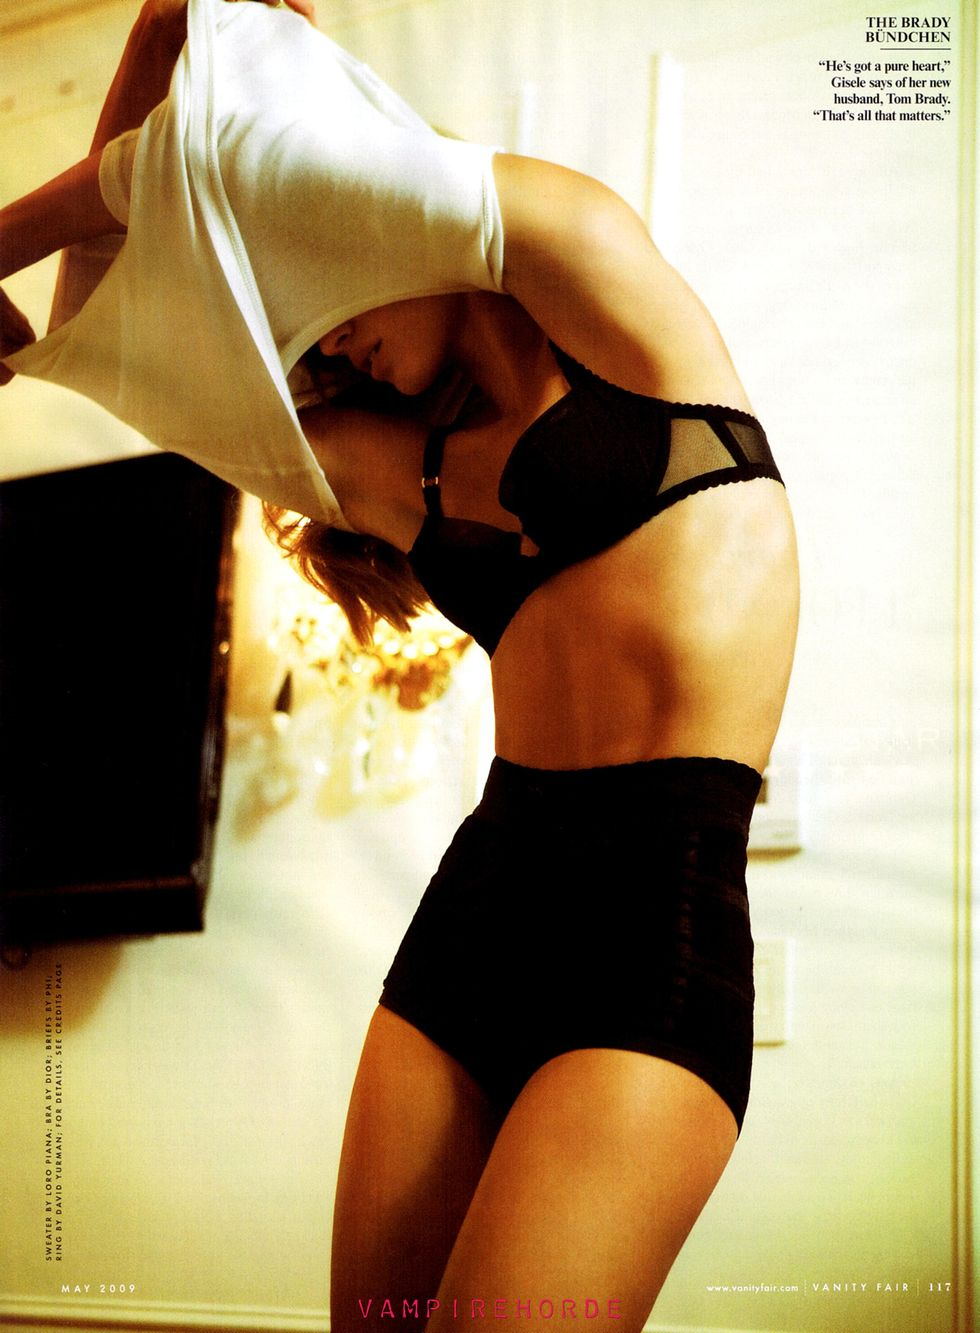 Gisele bundchen vanity fair may 2009 hq scans naked (81 pics)